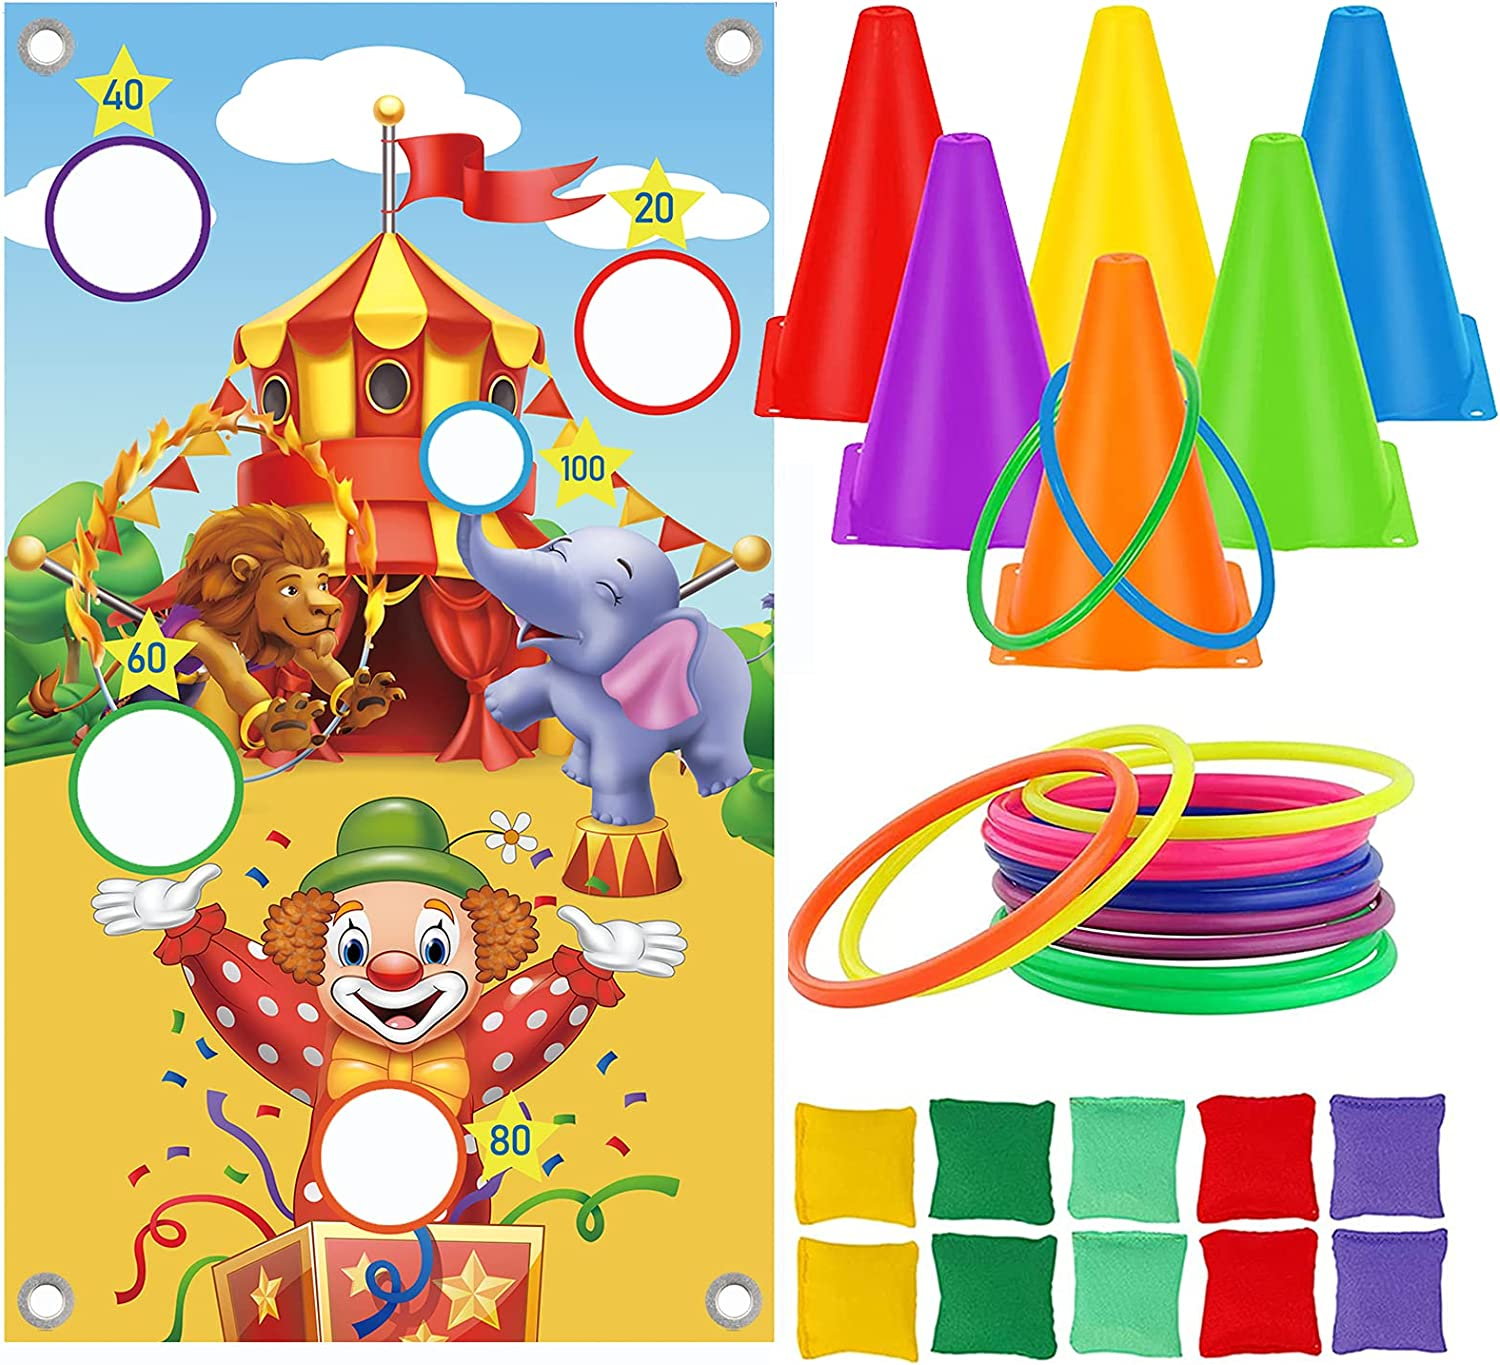 LOYALSE Carnival Game Set Special price for a limited time 31pcs Bean Bags Cone Plastic Los Angeles Mall